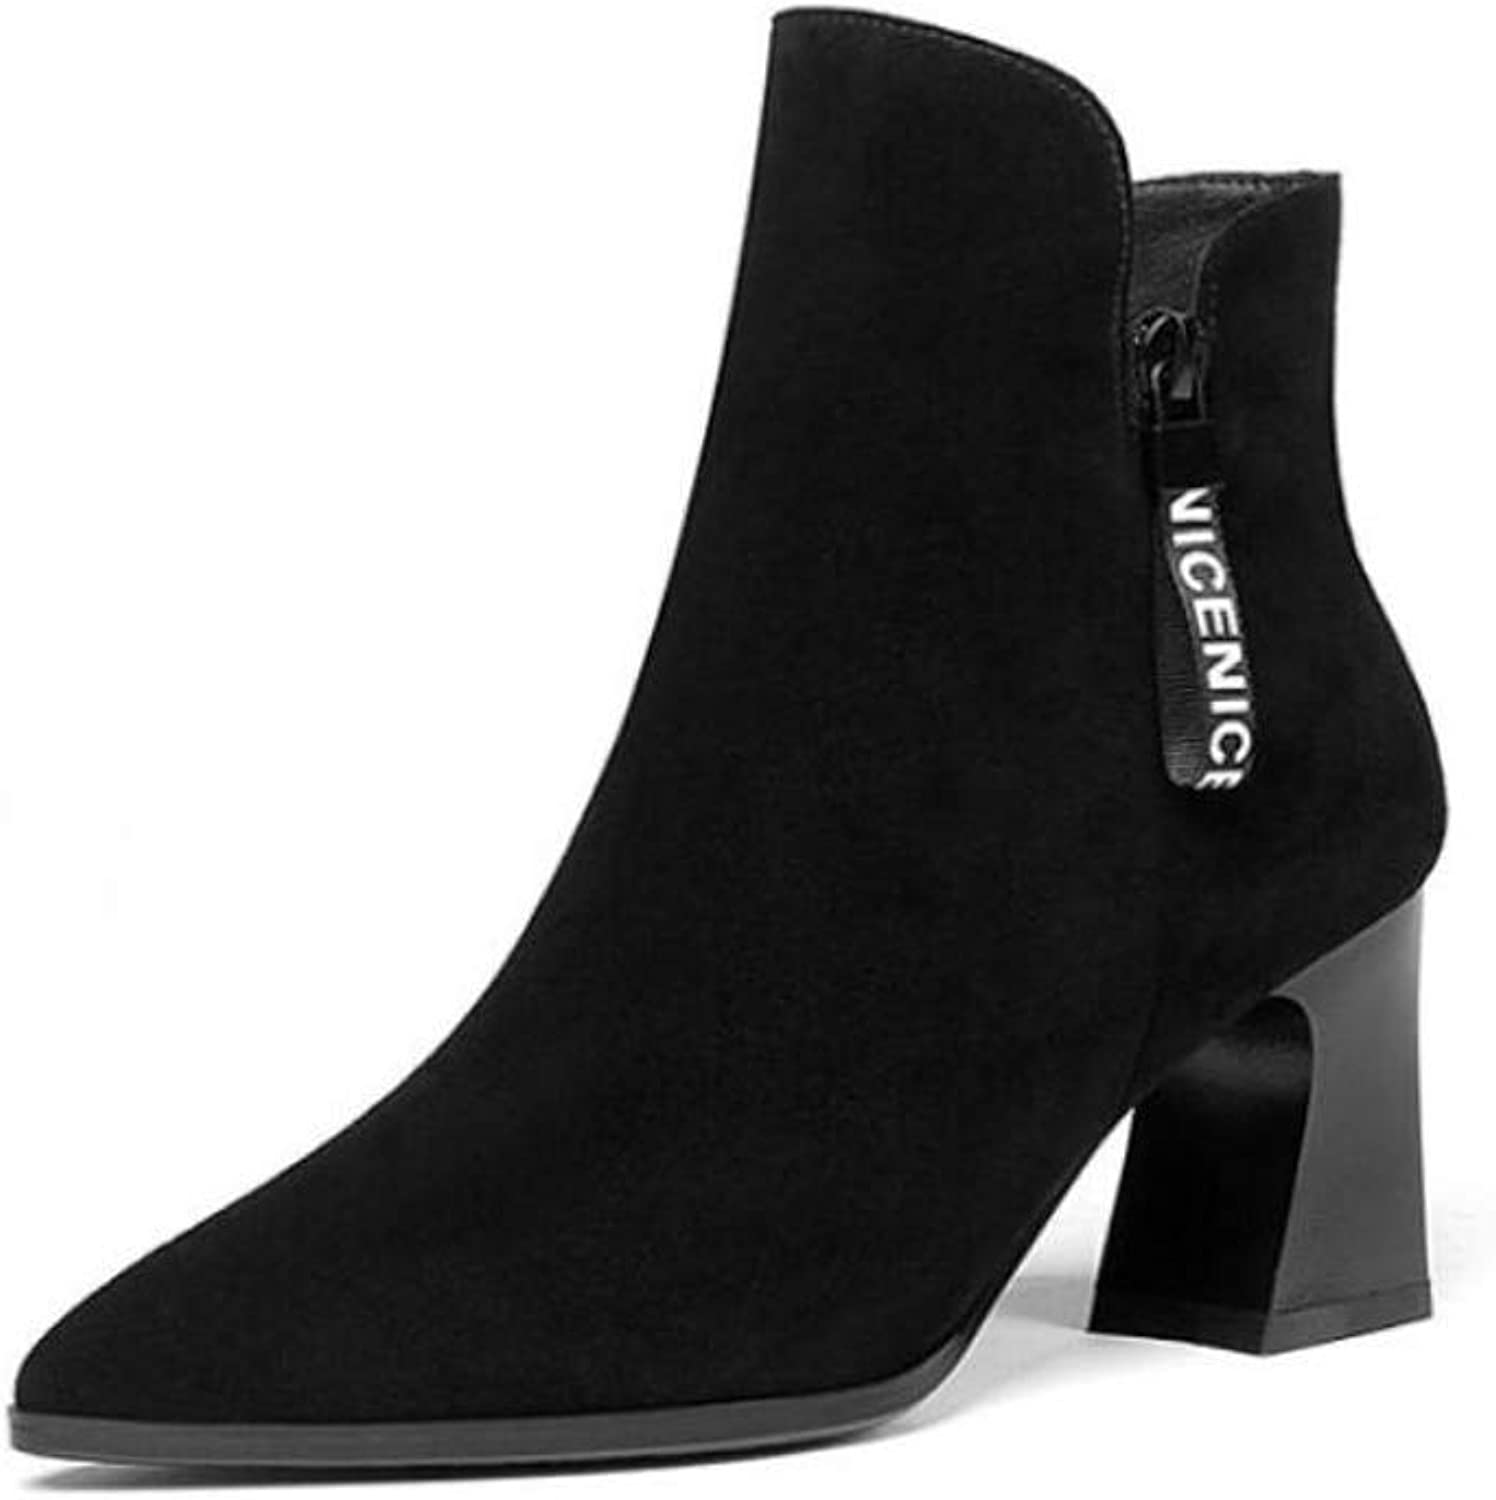 Women's Plus Velvet Boots Matte Leather Thick with Pointed Fashion Simple Solid Short Boots Women's Winter Black Boots